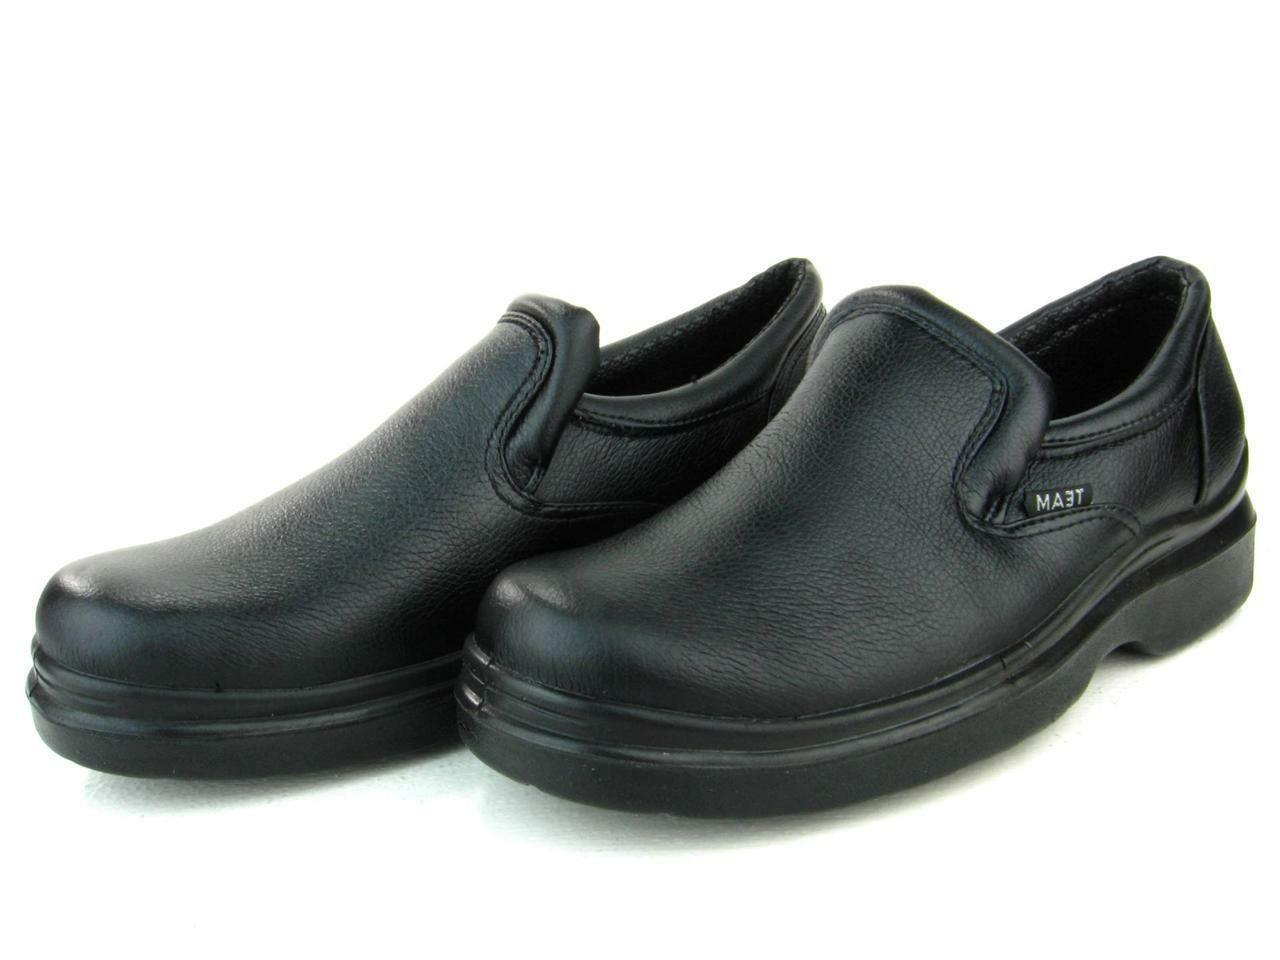 Men's Kitchen Work Shoes Loafer Slip-On Non-Slip